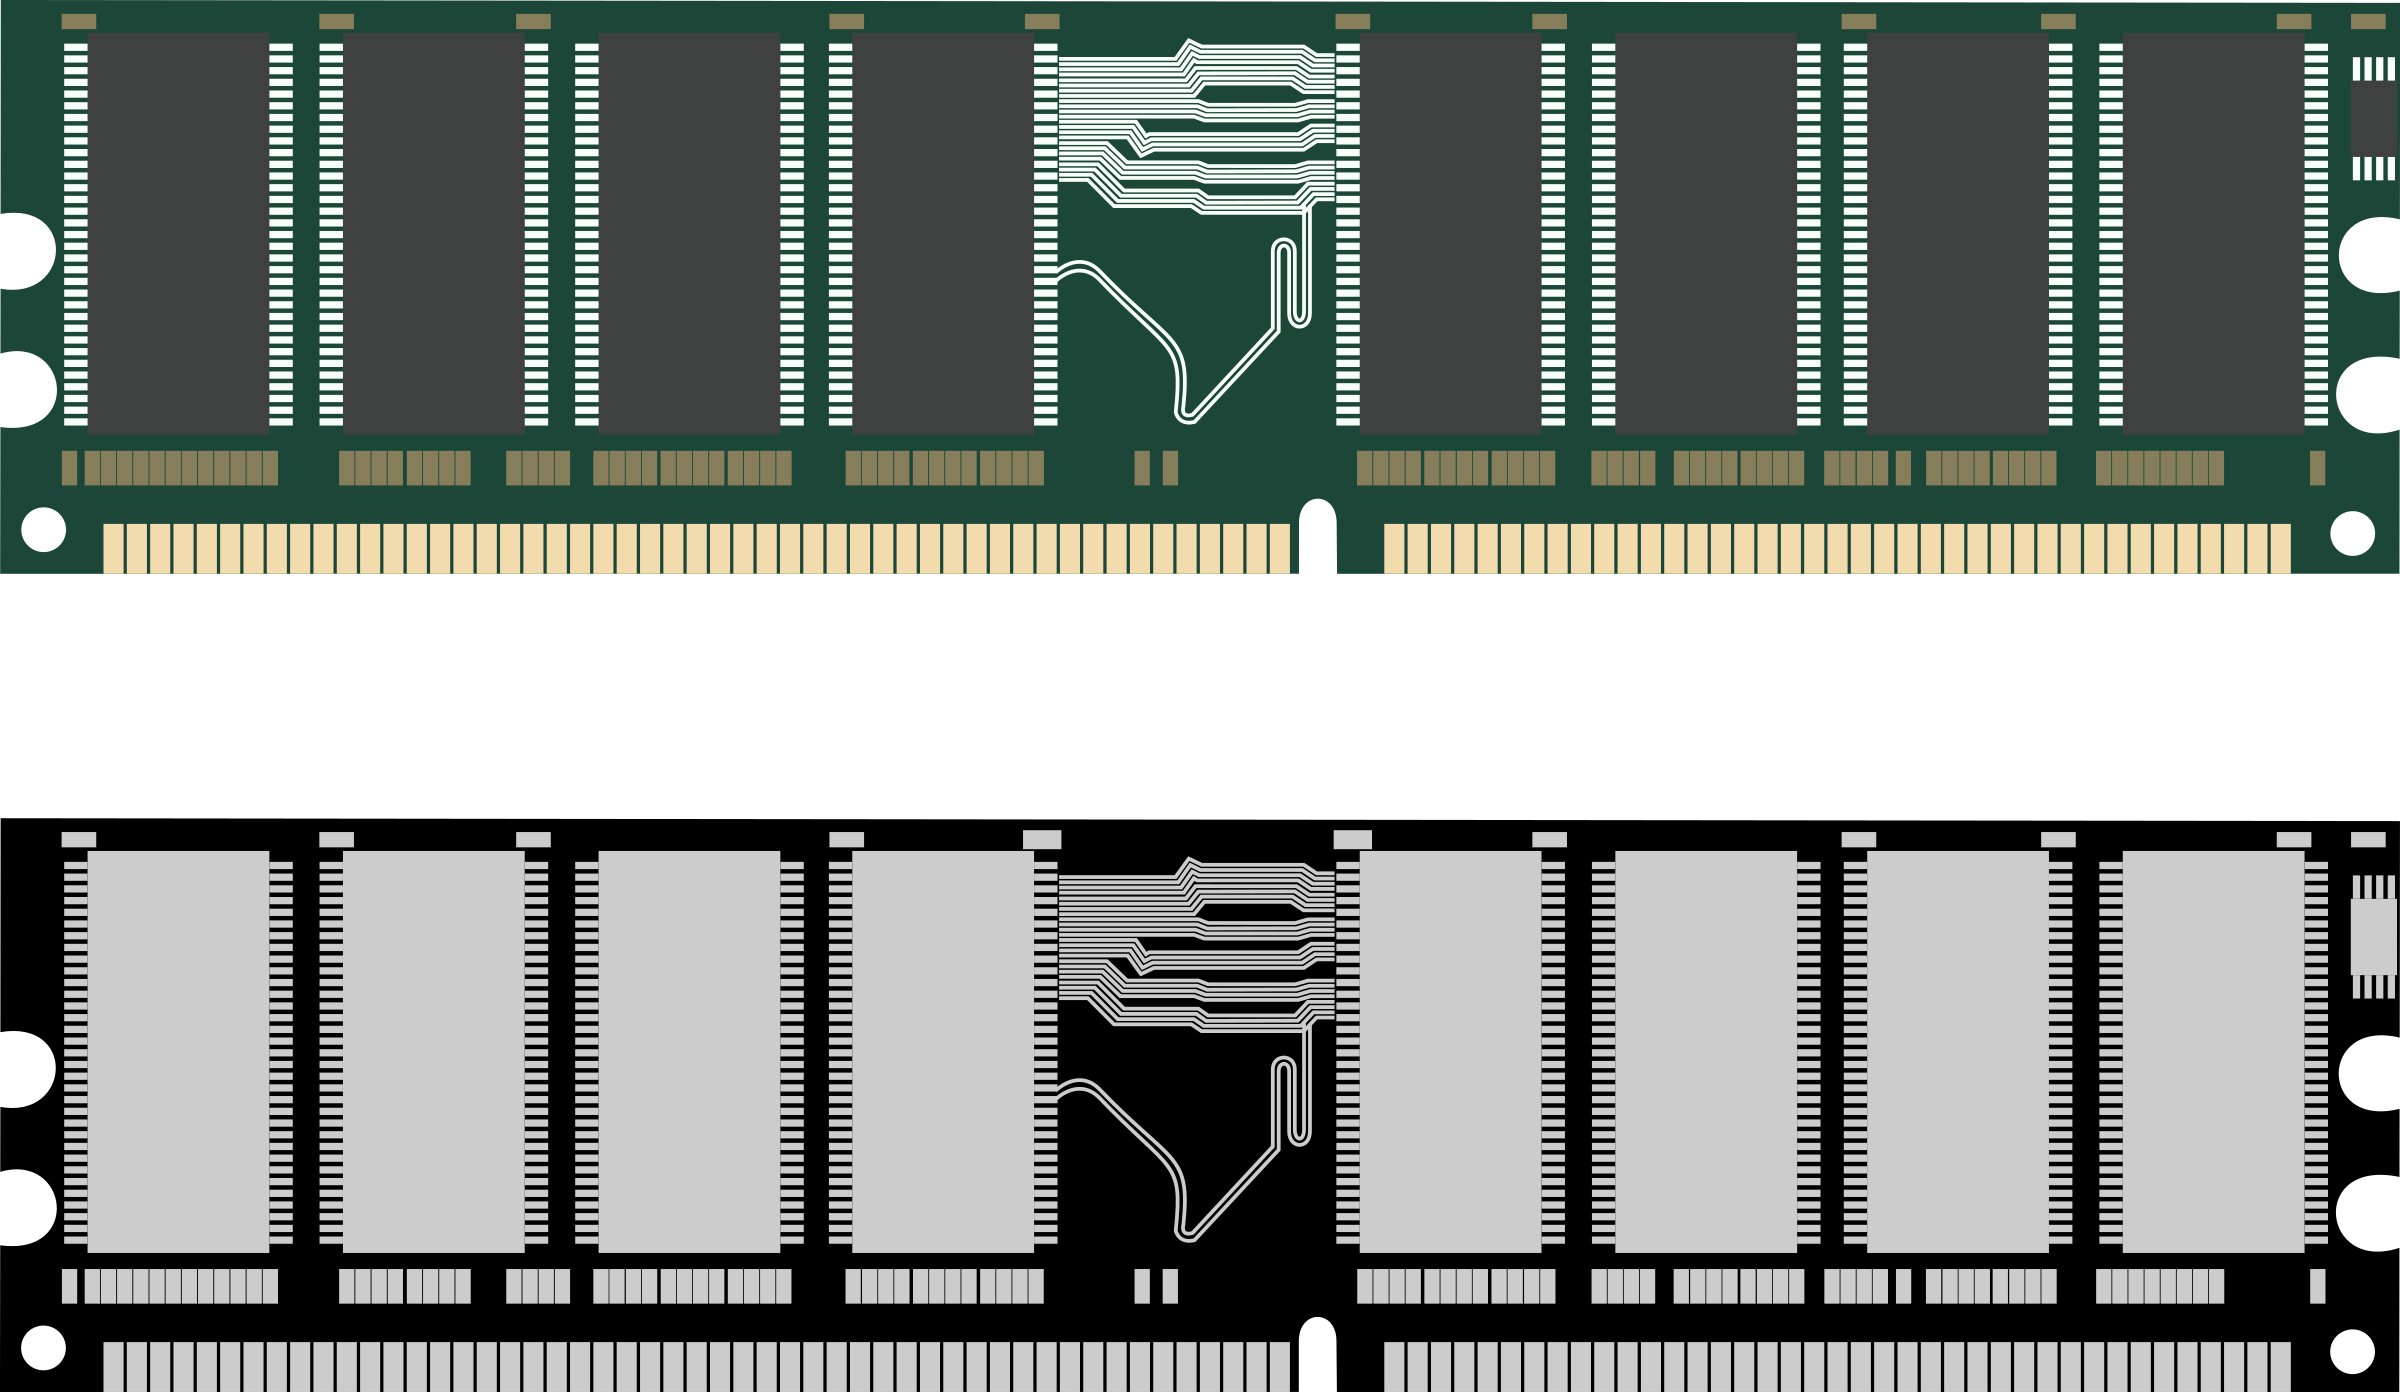 RAM memory card by Post_Mjobeus